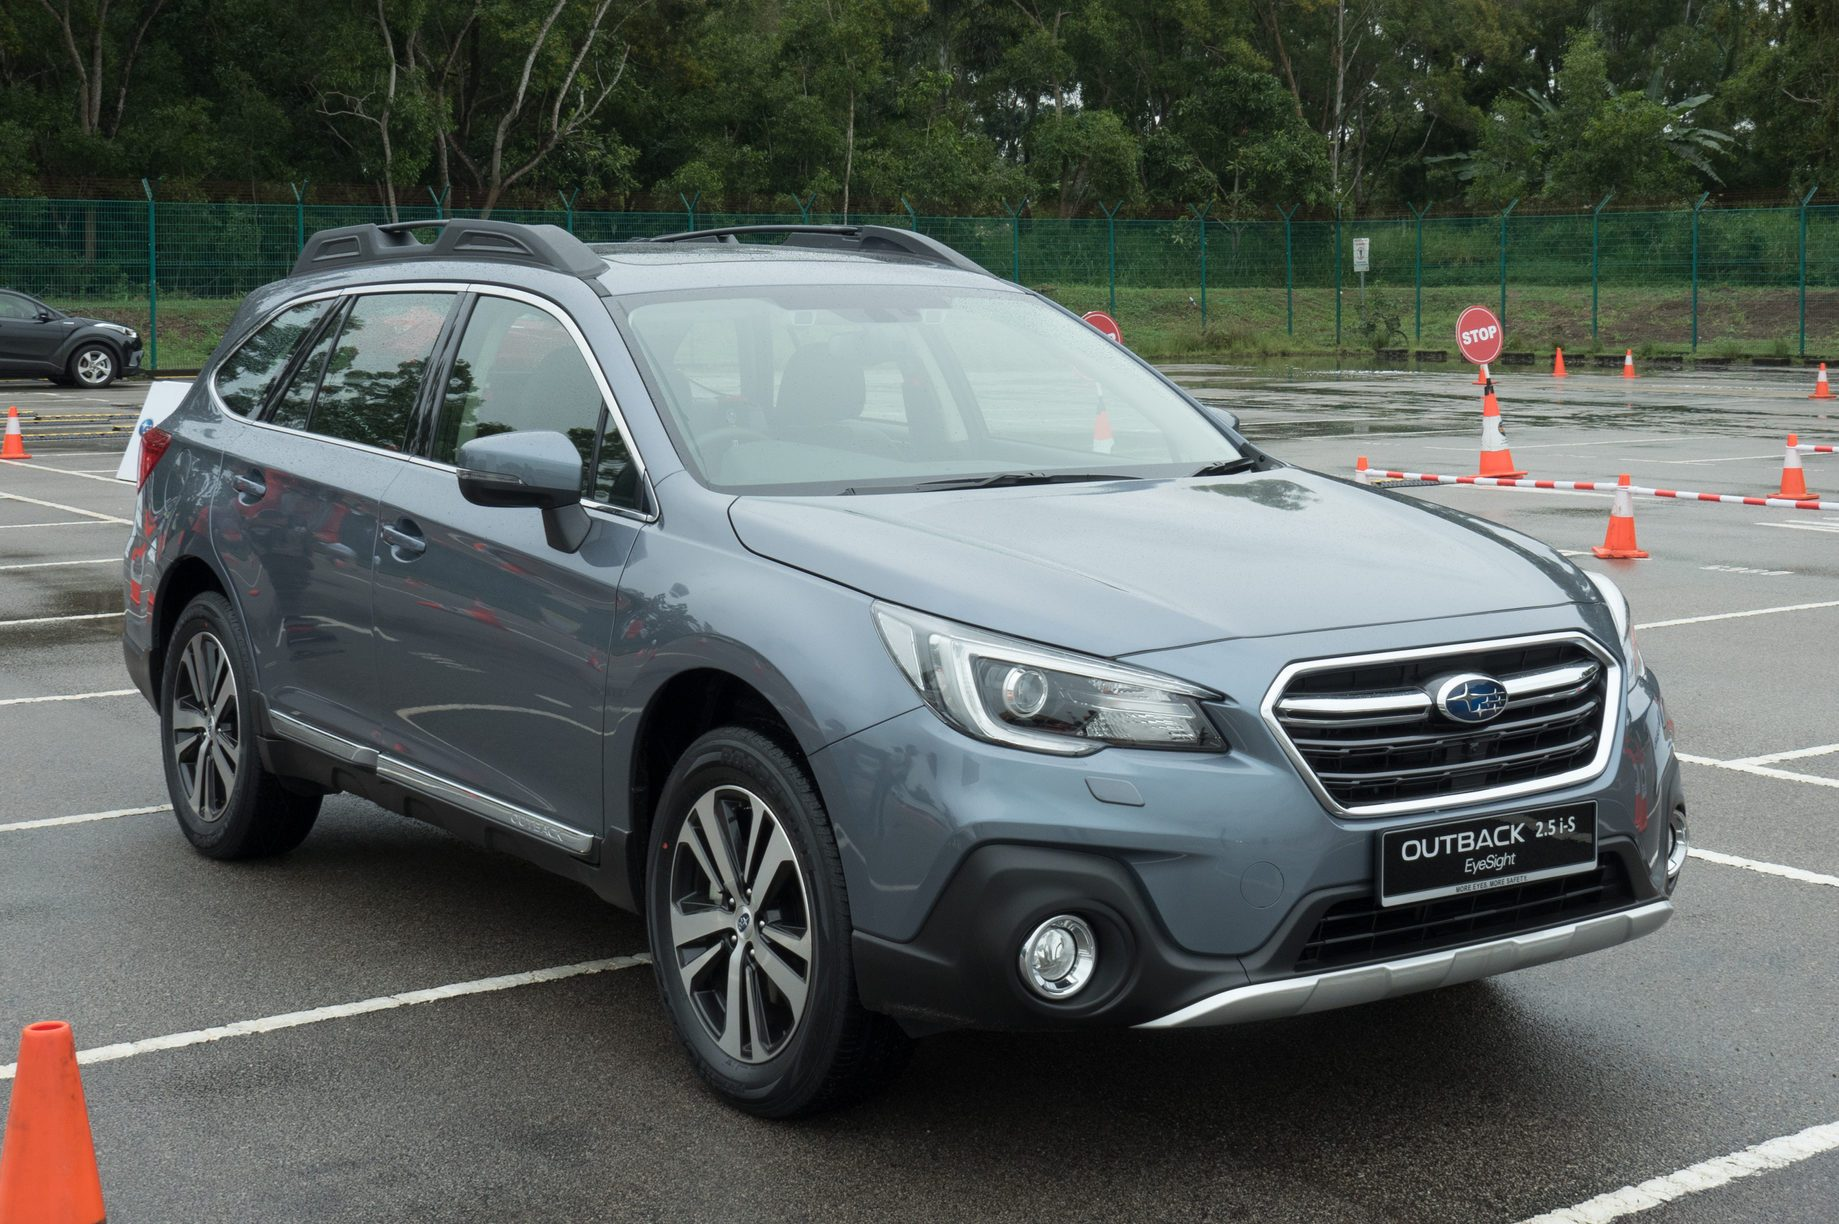 Subaru Outback 2018 Test Drive Day